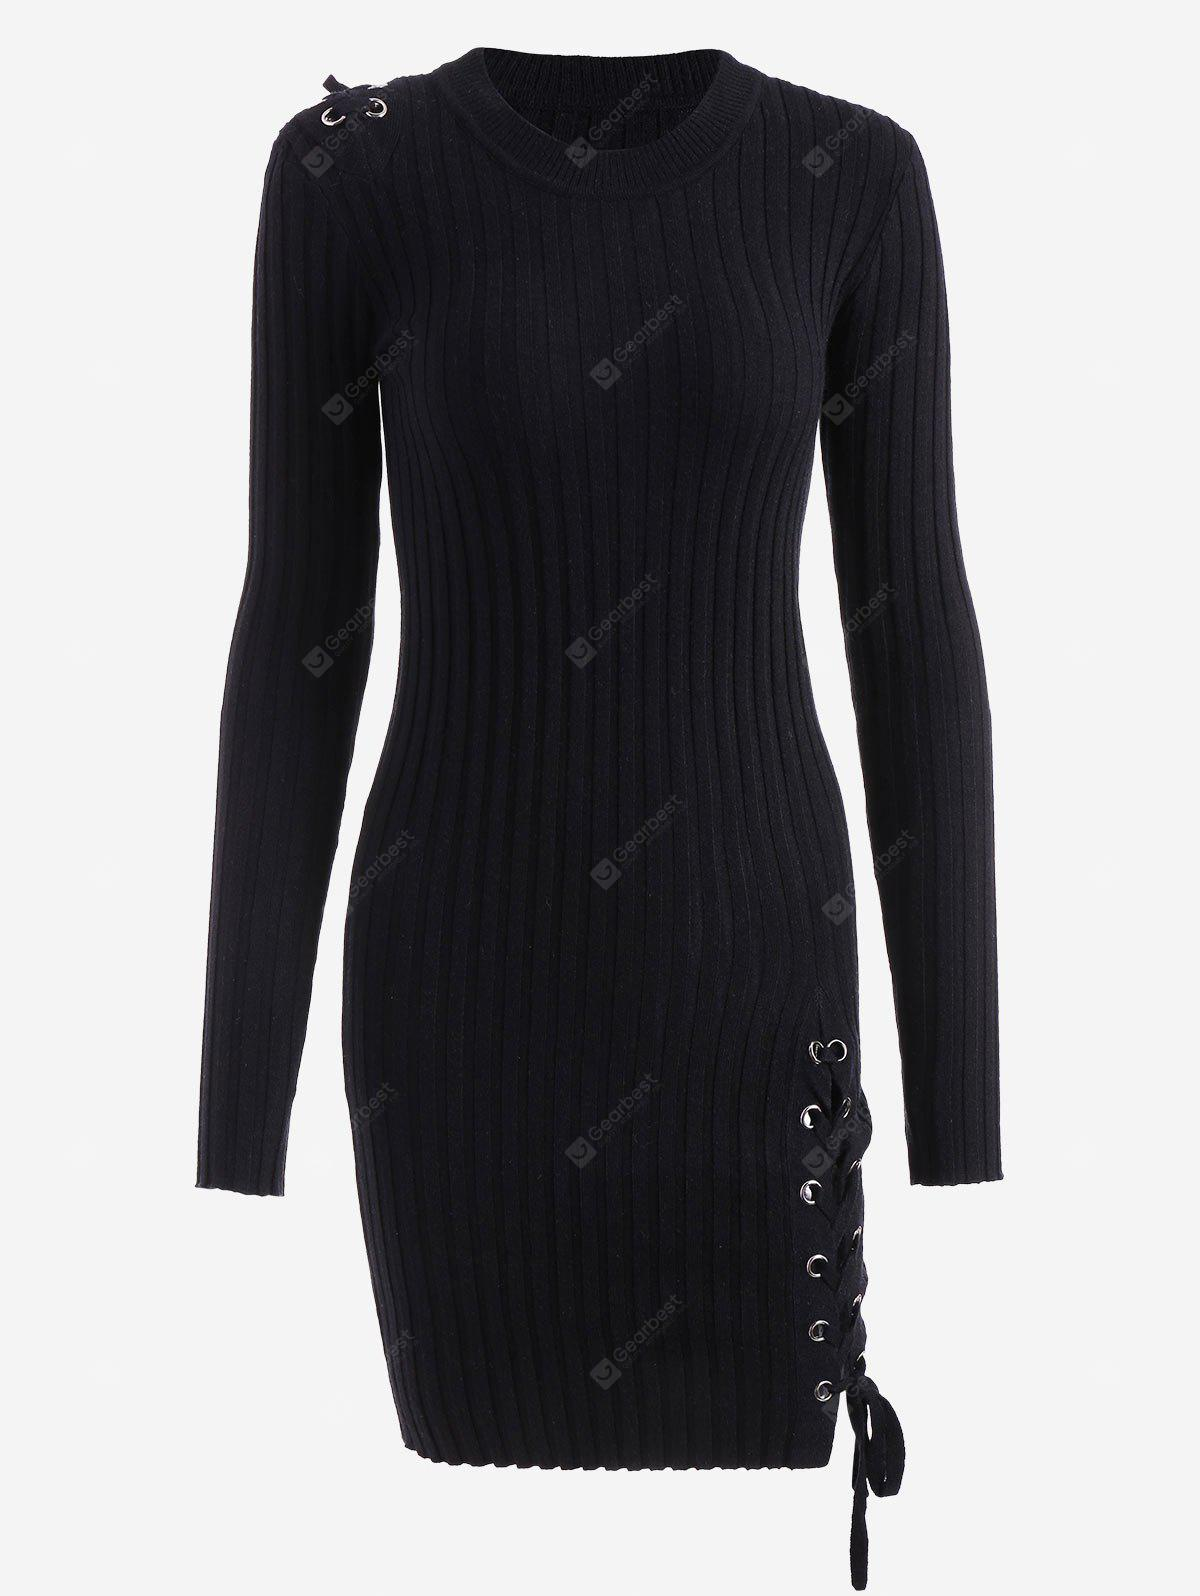 Lace Up Knitted Bodycon Mini Dress